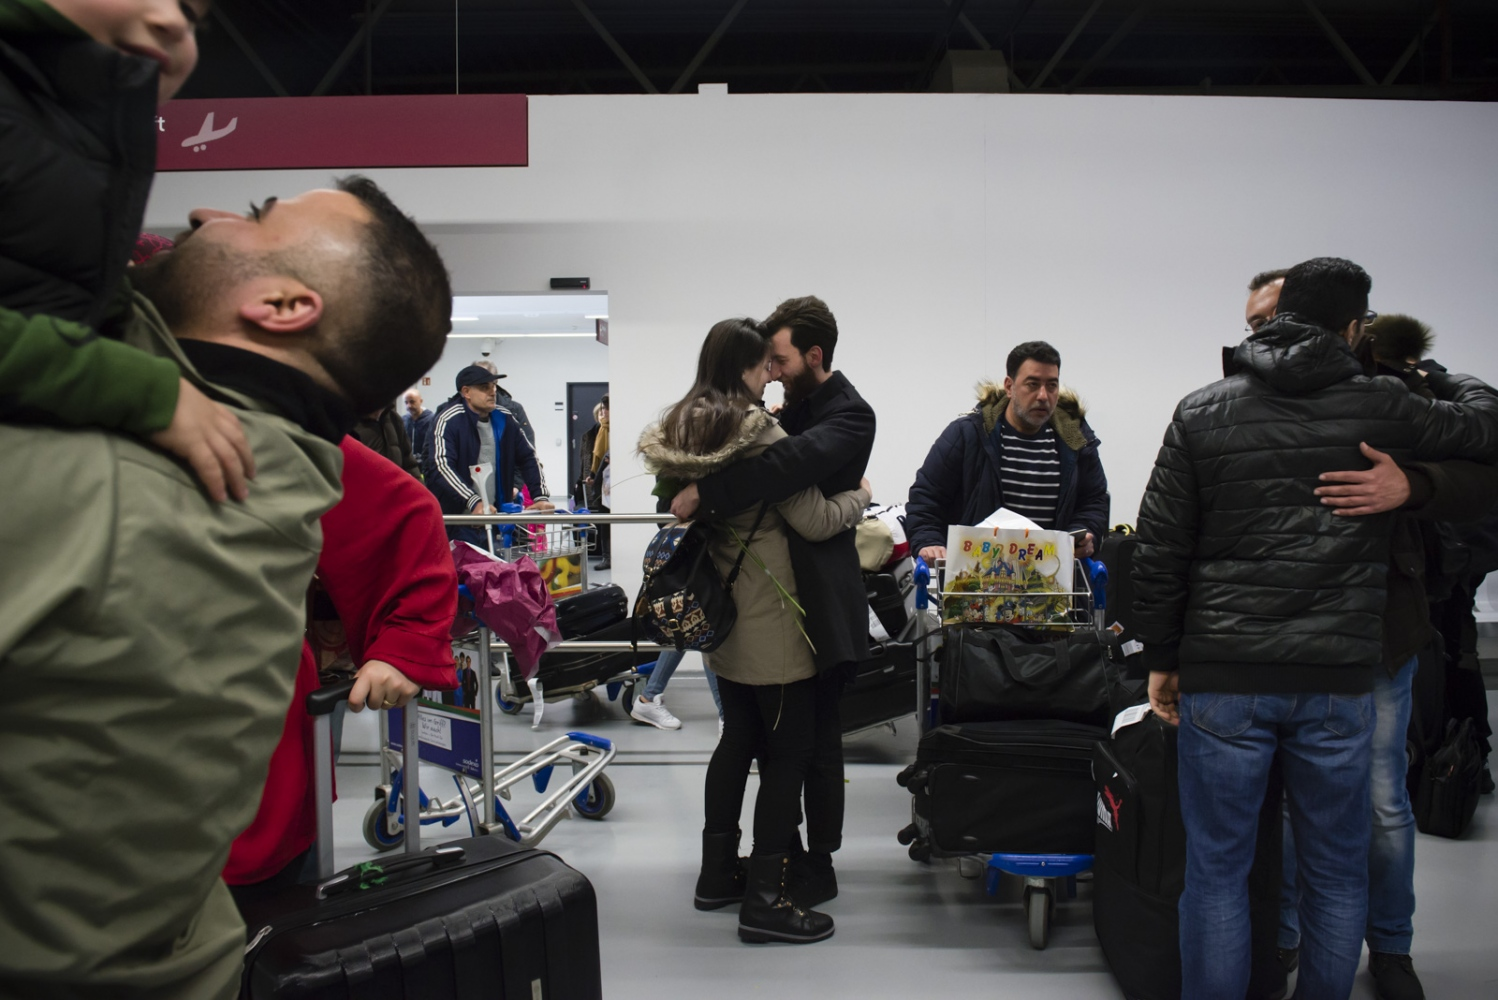 BERLIN  | GERMANY | 2017-03-09 | Reunited after 27 months, Ali (27) welcomes his wife, Marwa (23) at Schonefeld Airport. In the background Syrian families welcome their loved ones who just arrived in Berlin, Germany.